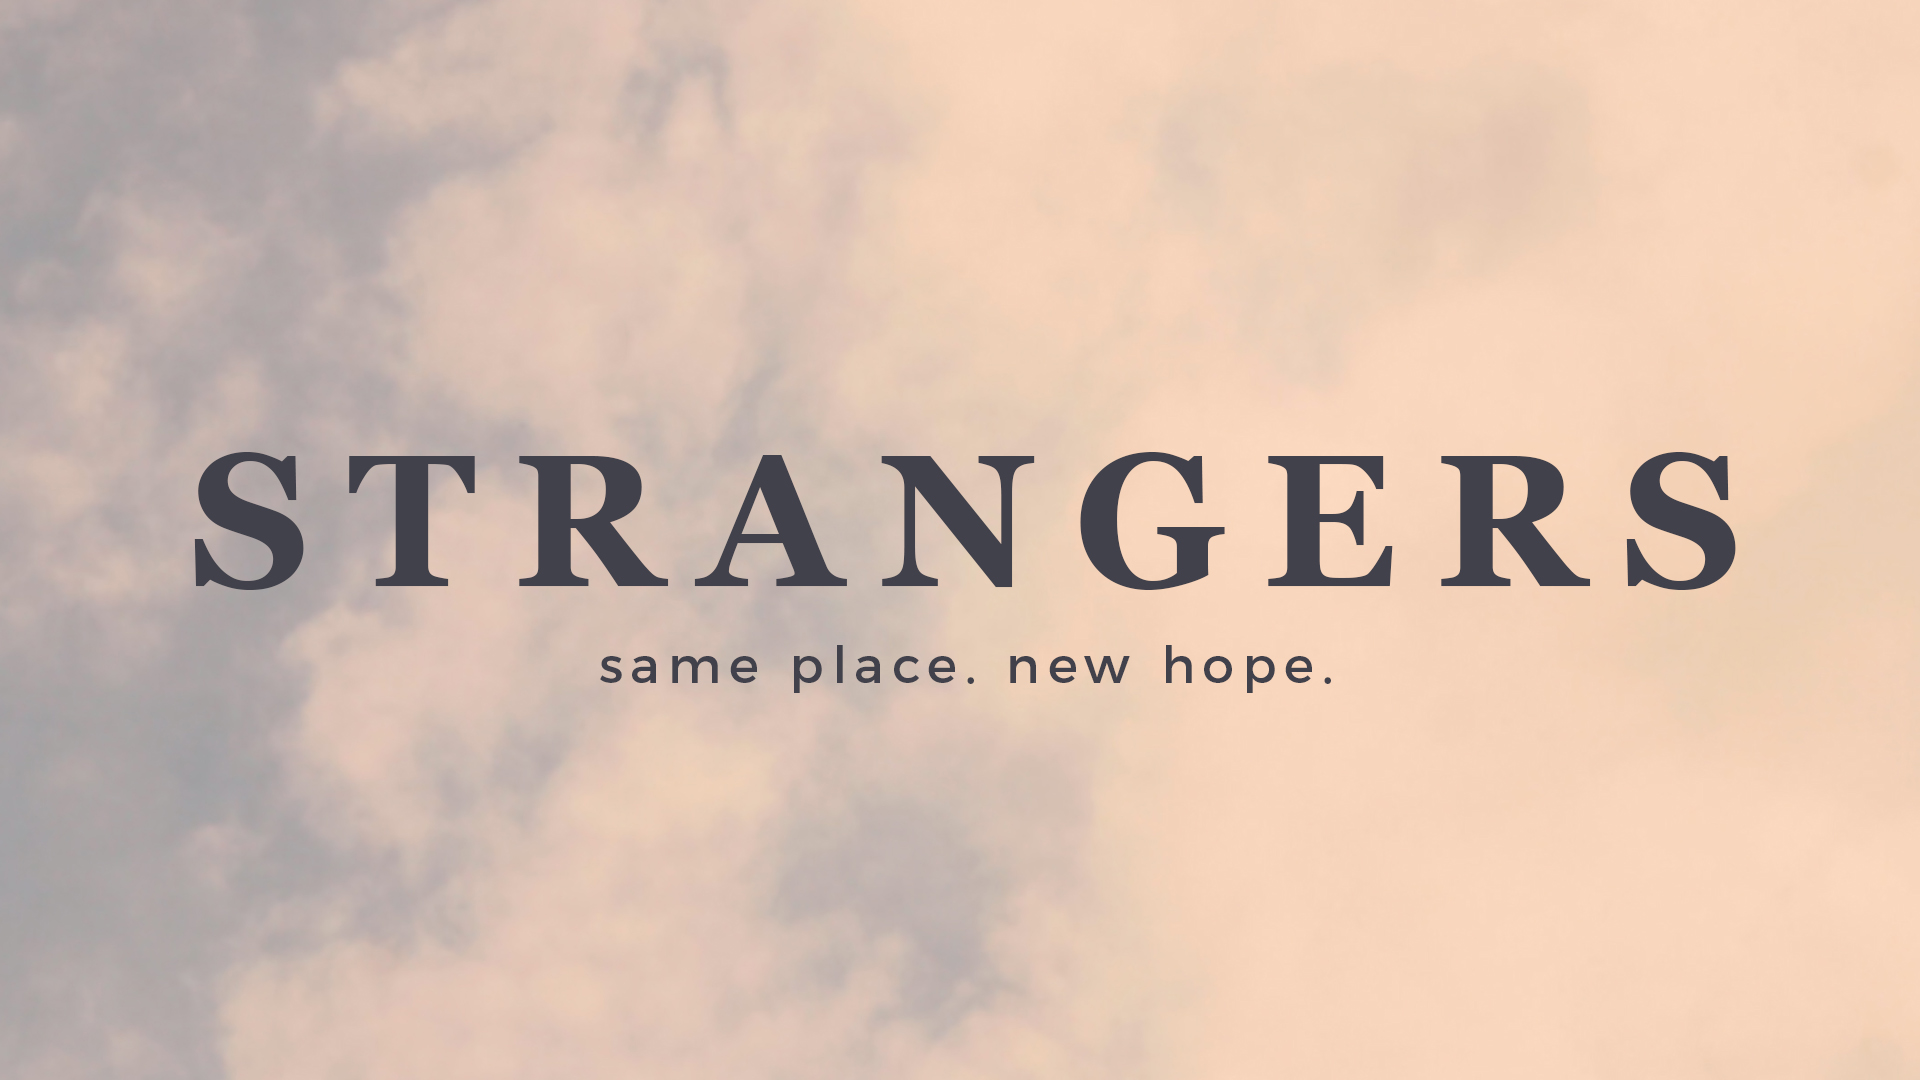 Strangers: What Do Others See?